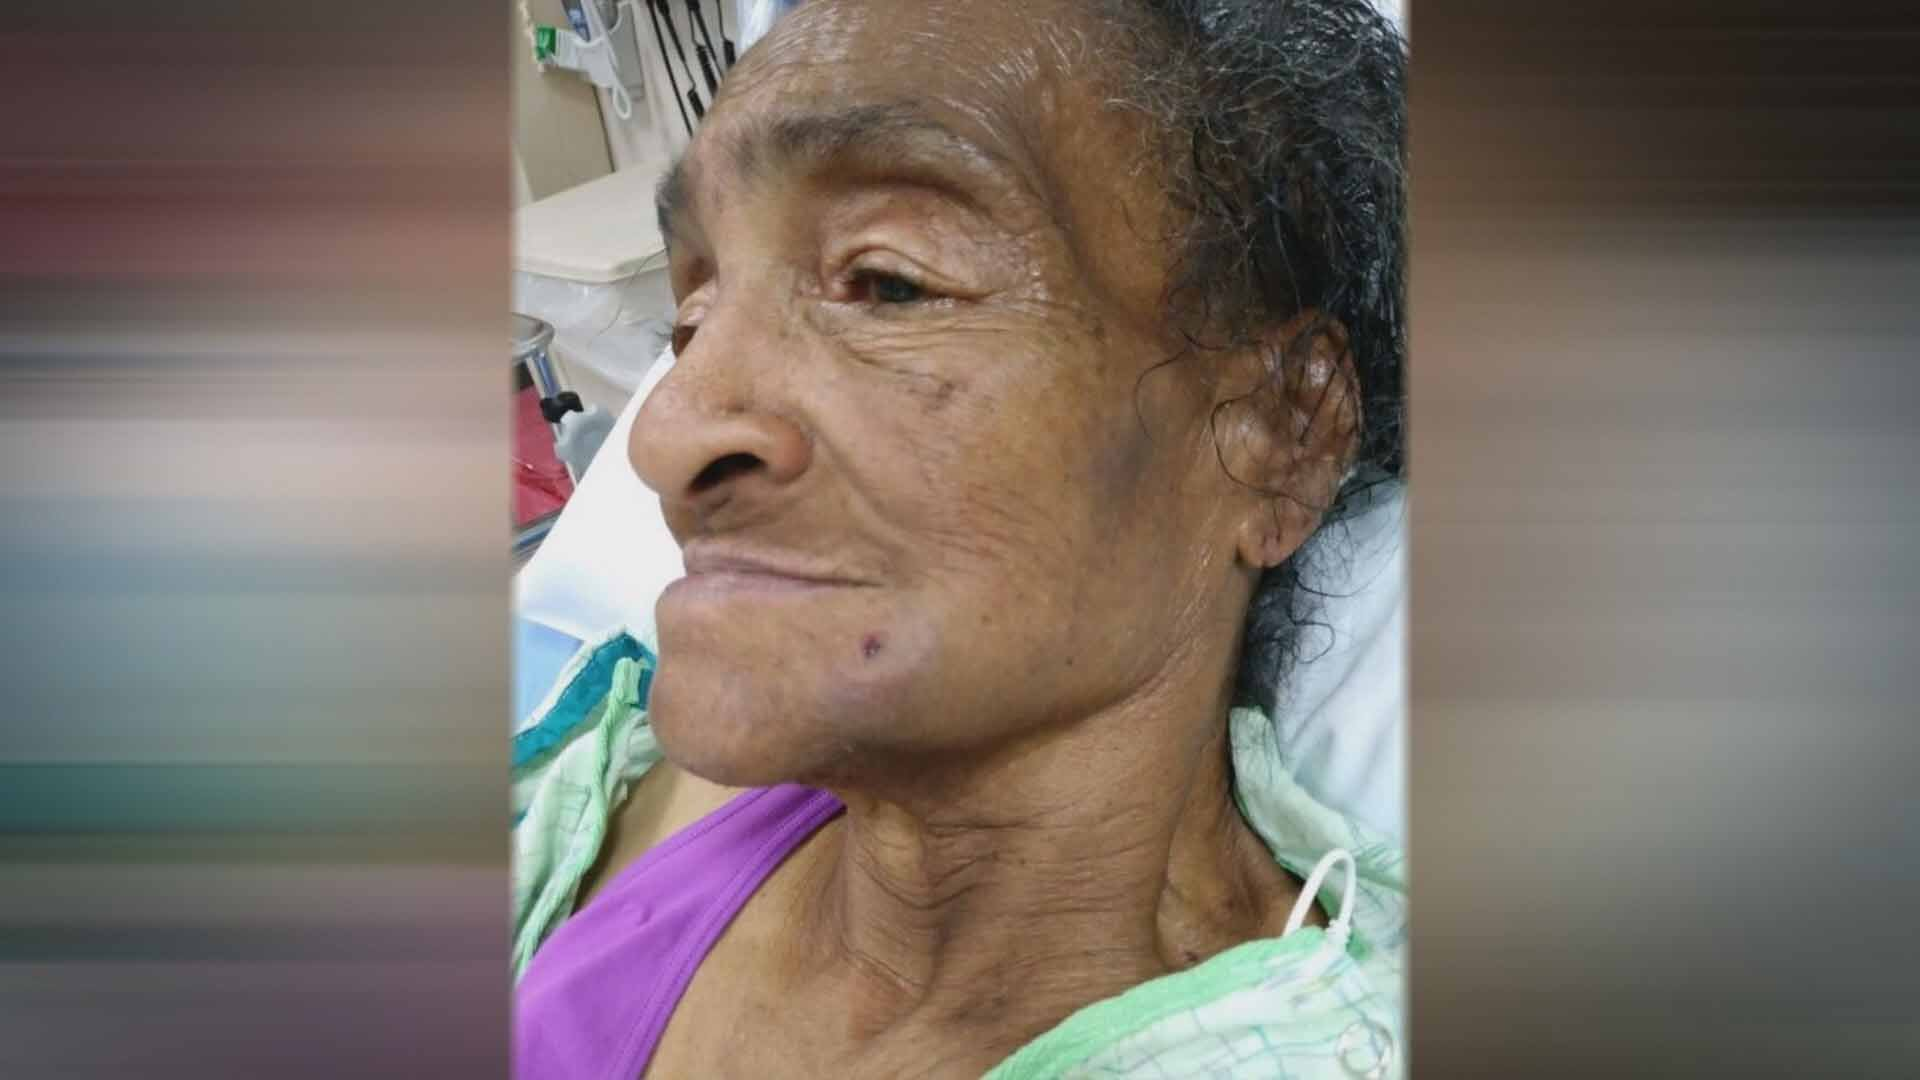 Norma Robinson, 81 was shot in the face with a BB gun on the parking lot of a South City shopping center. Credit: KMOV